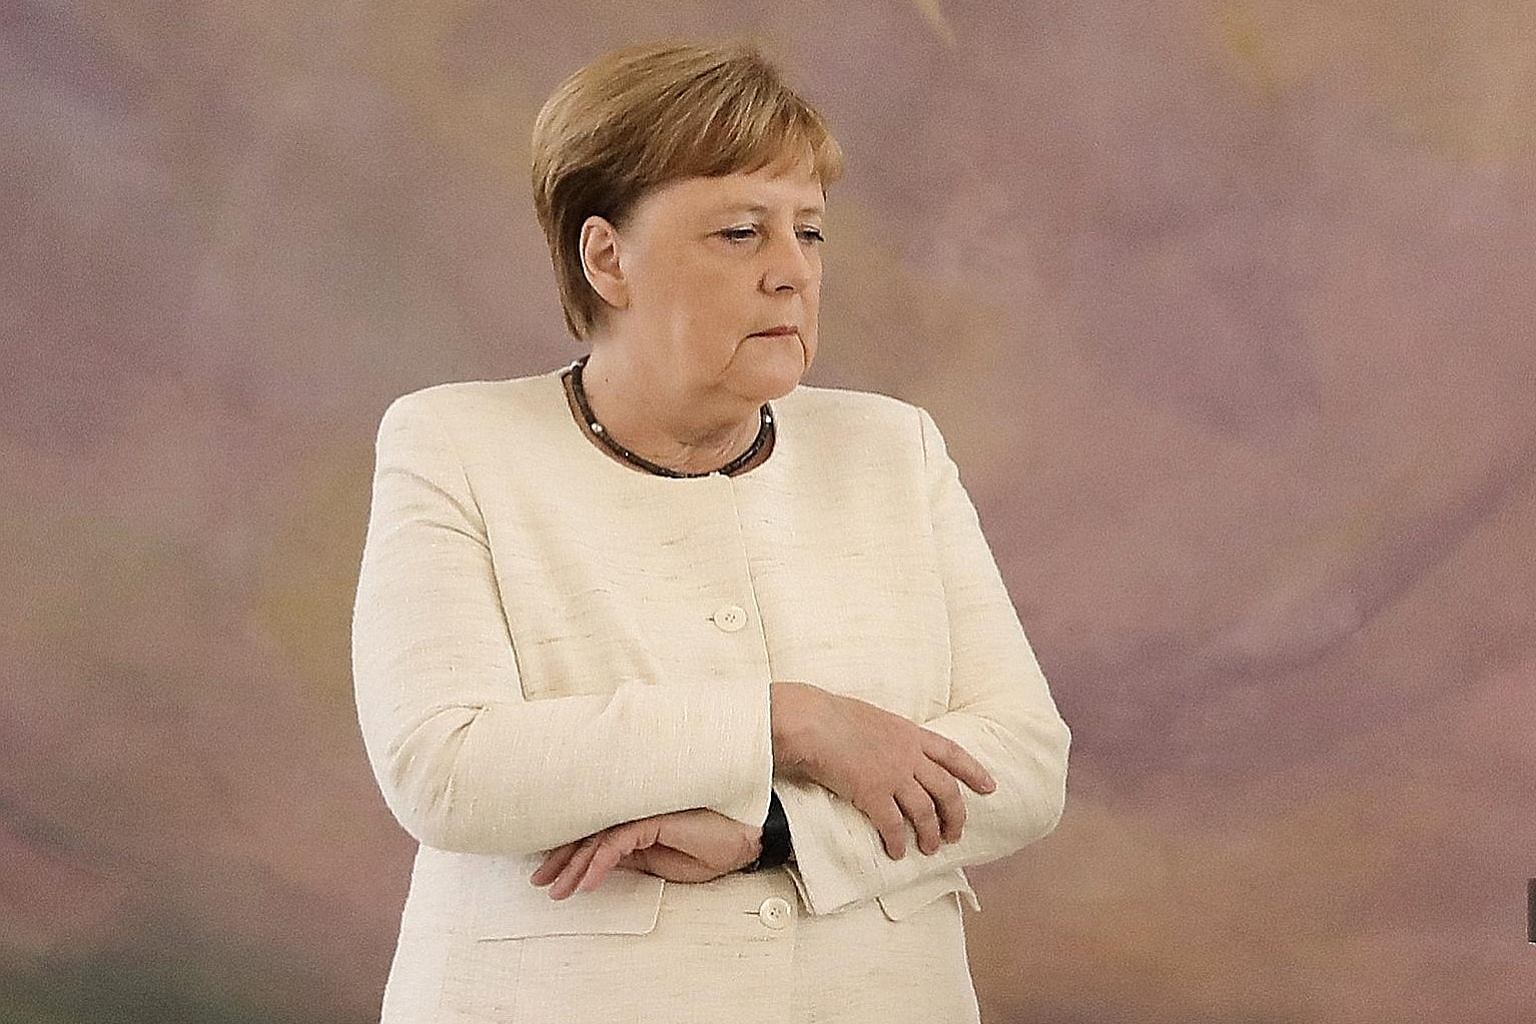 Many in Germany are concerned about Dr Angela Merkel's health and heavy workload, but the Chancellor, who has led the country since 2005, refuses to make a big deal of her recent trembling episodes.